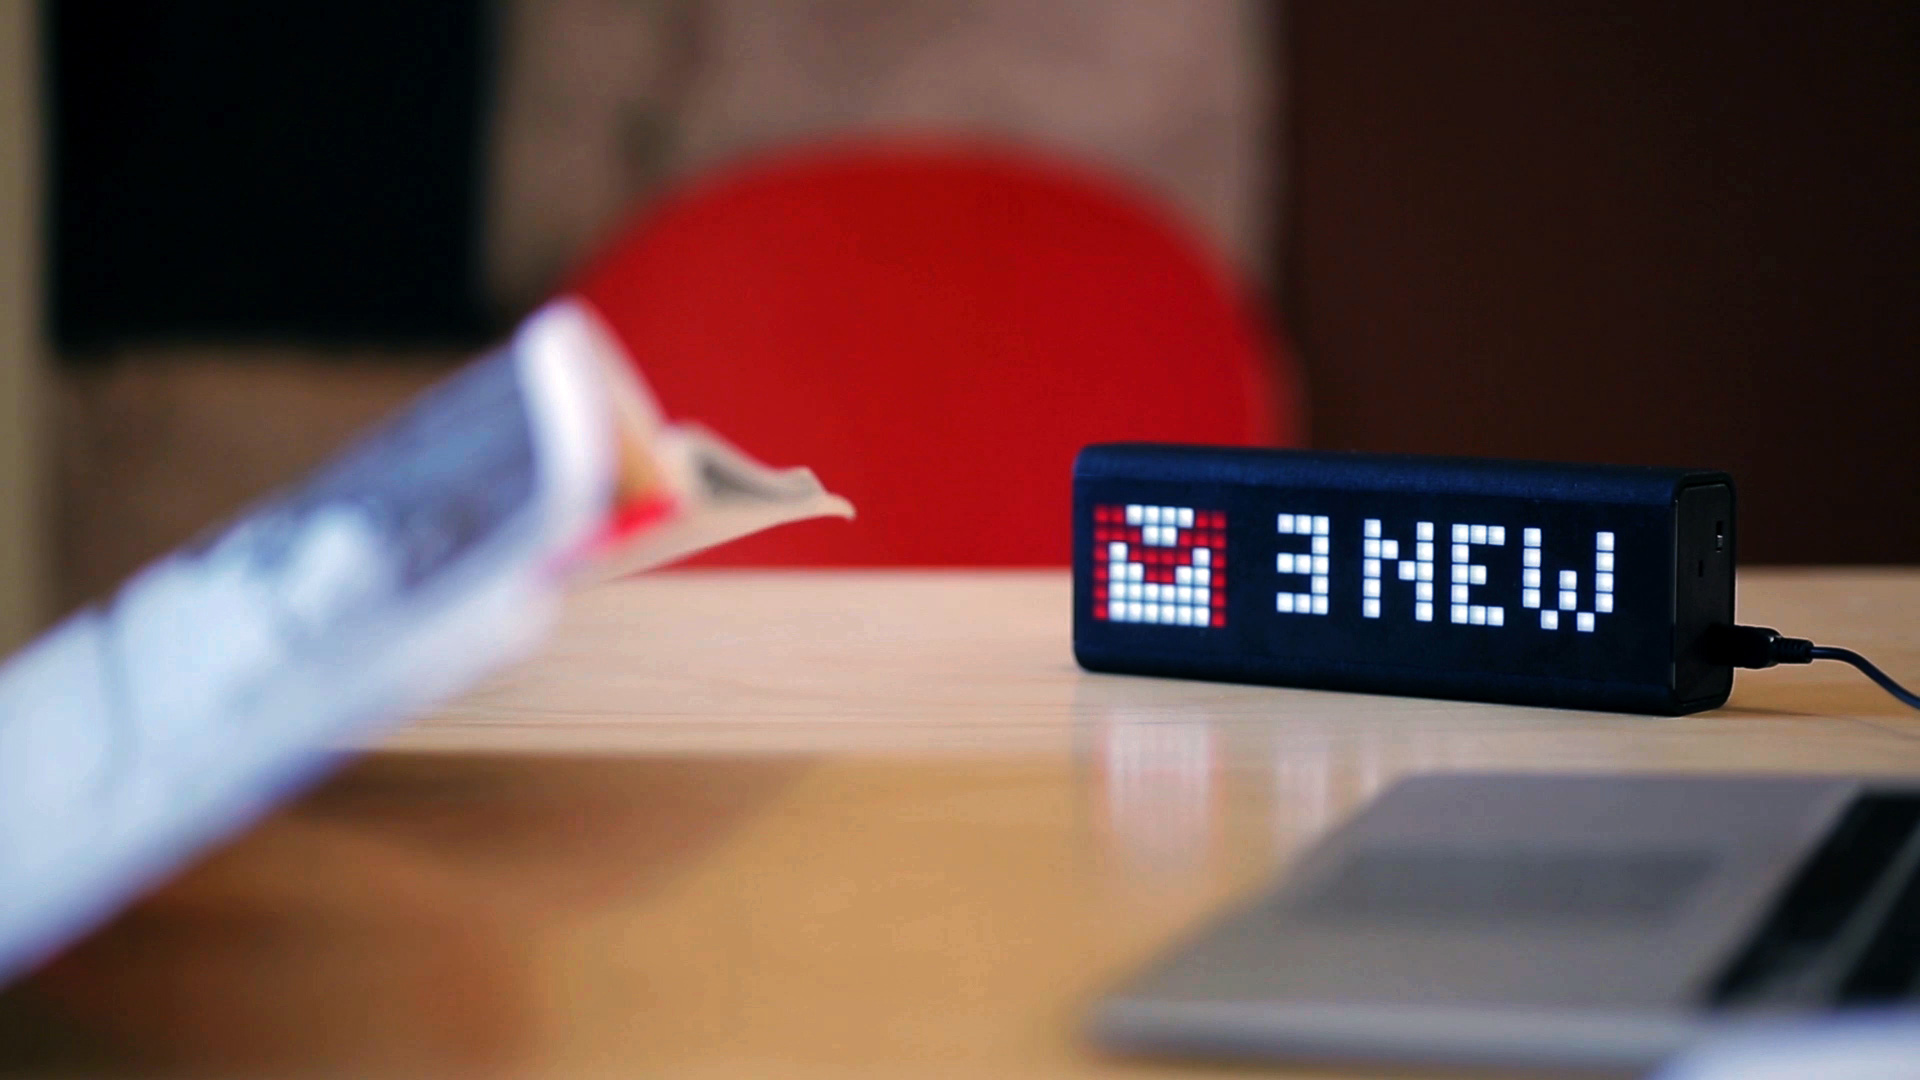 LaMetric notification center display email